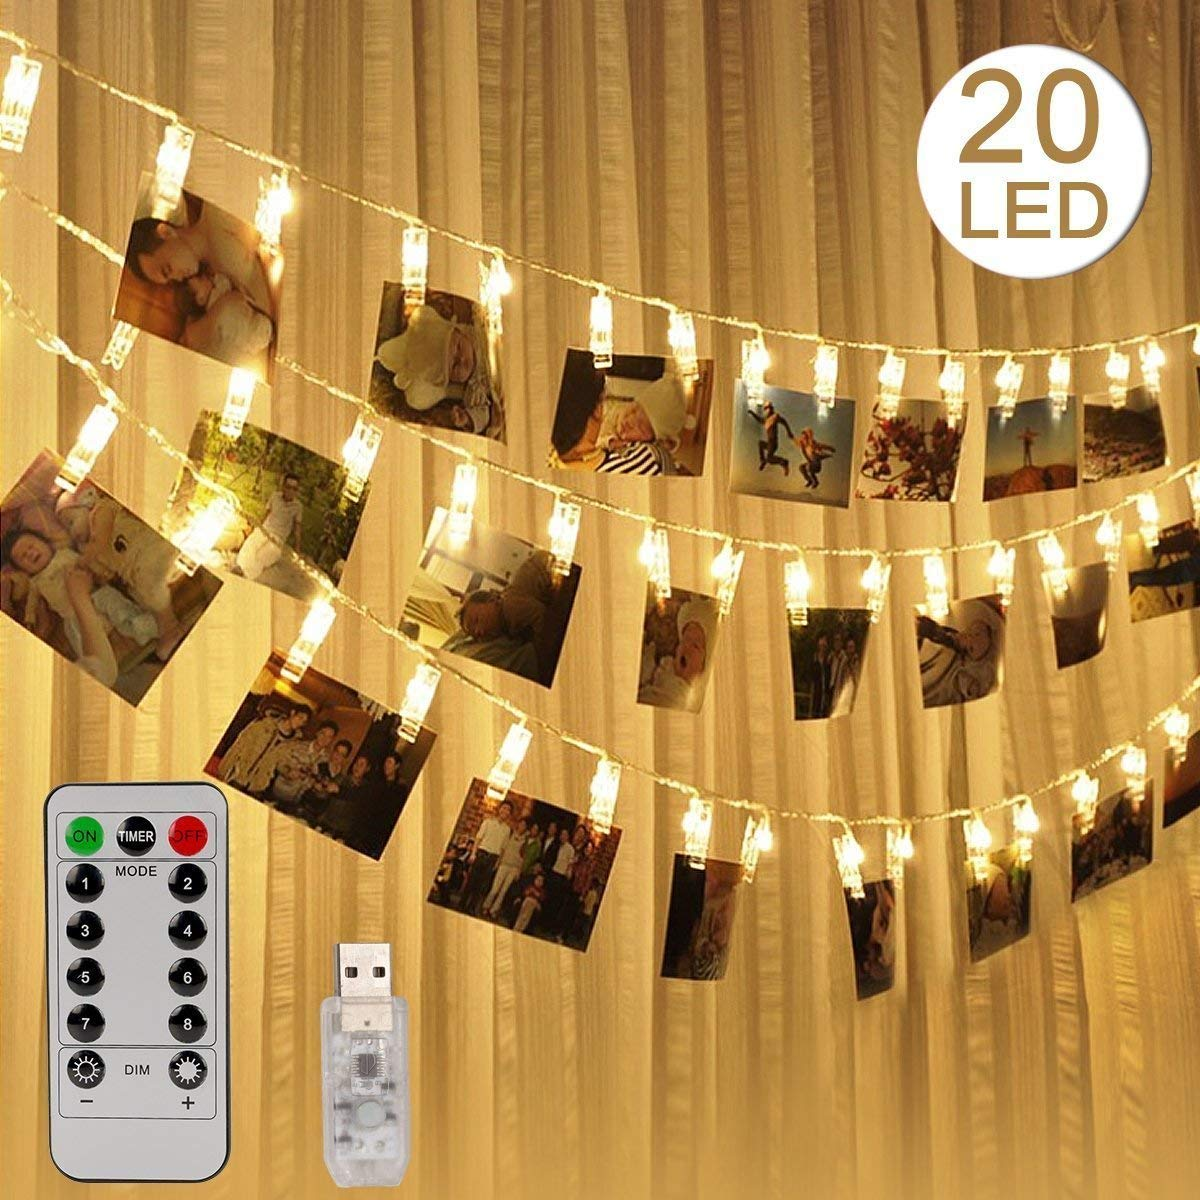 LED Photo Clip String Lights with Remote, USB Powered Warm Light 20 LEDs Photo Clips 10ft for Decoration Hanging Photos Pictures Card Artworks, 8 Light Modes & Timer LED Twinkle Lighs (Warm White)